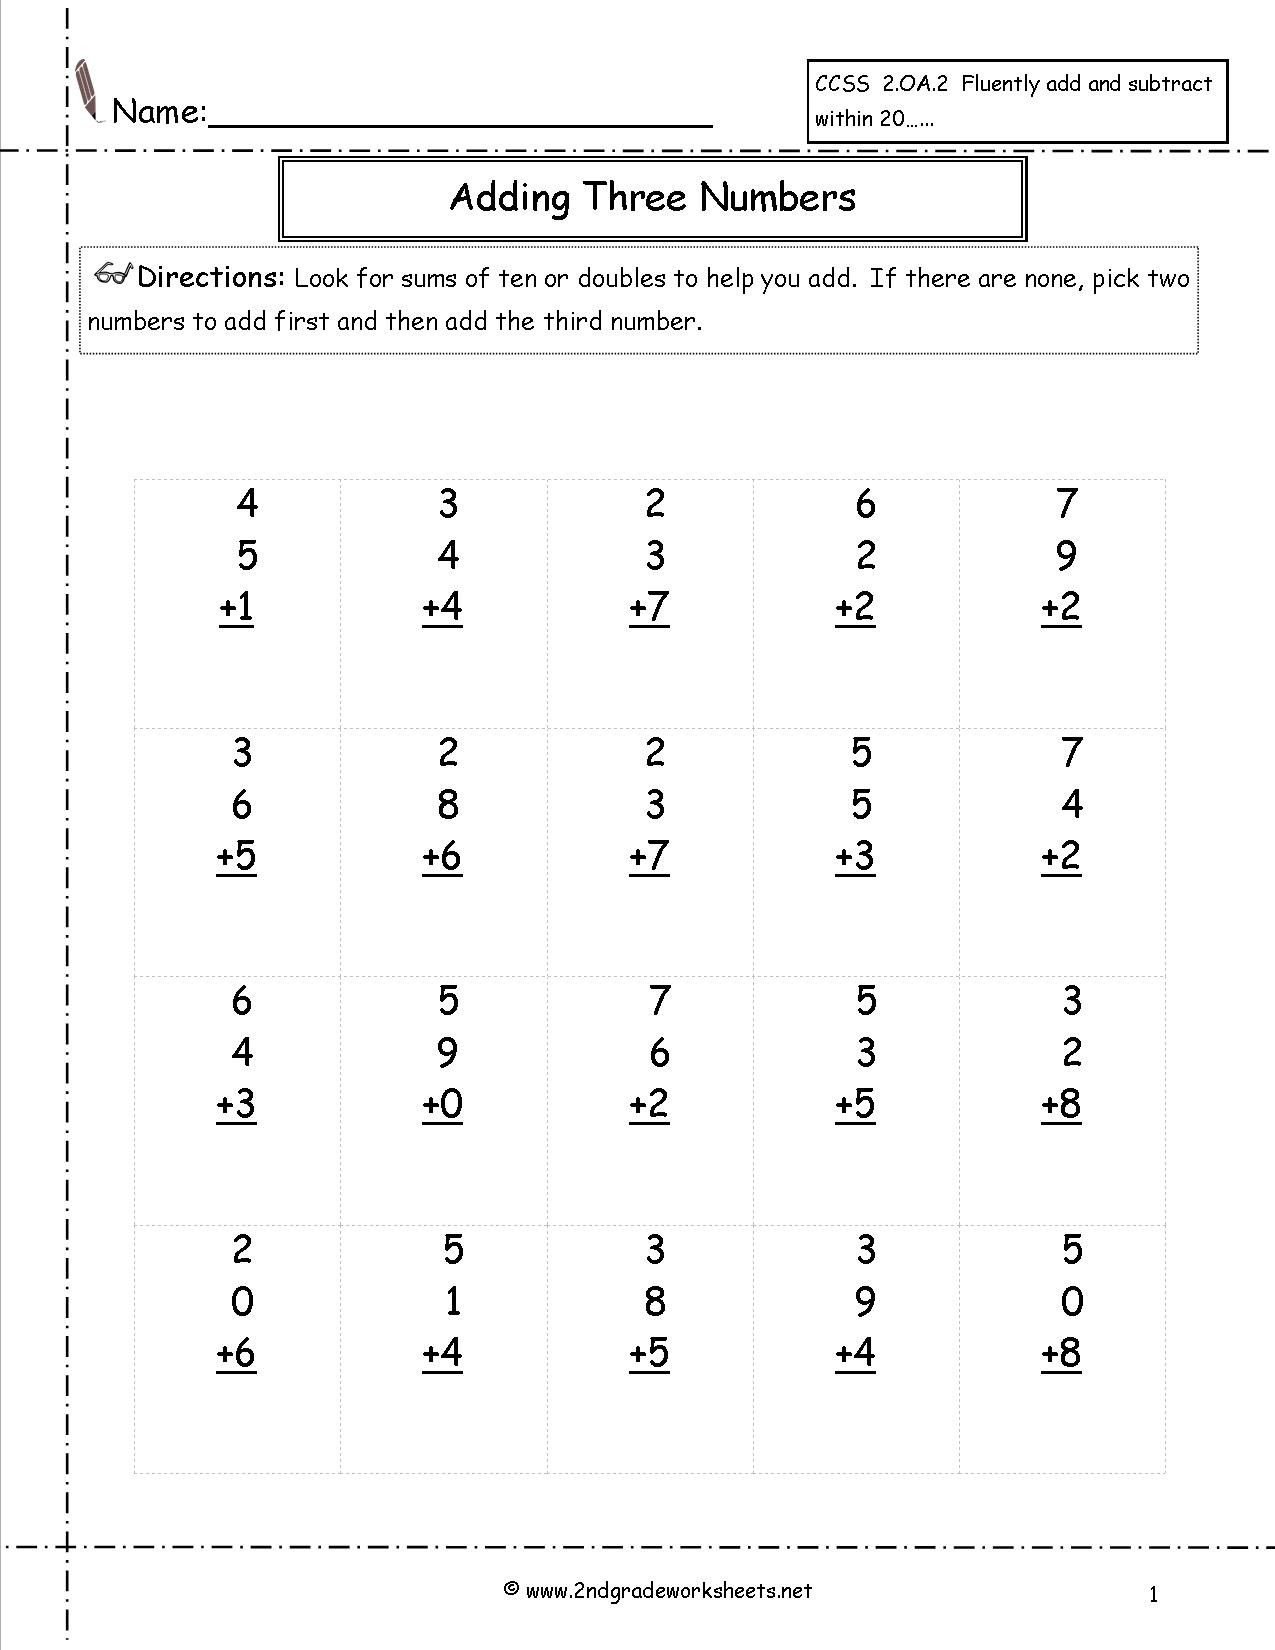 3 Free Math Worksheets Third Grade 3 Addition Adding whole Thousands free  printable math eets..…   Free math worksheets [ 1650 x 1275 Pixel ]